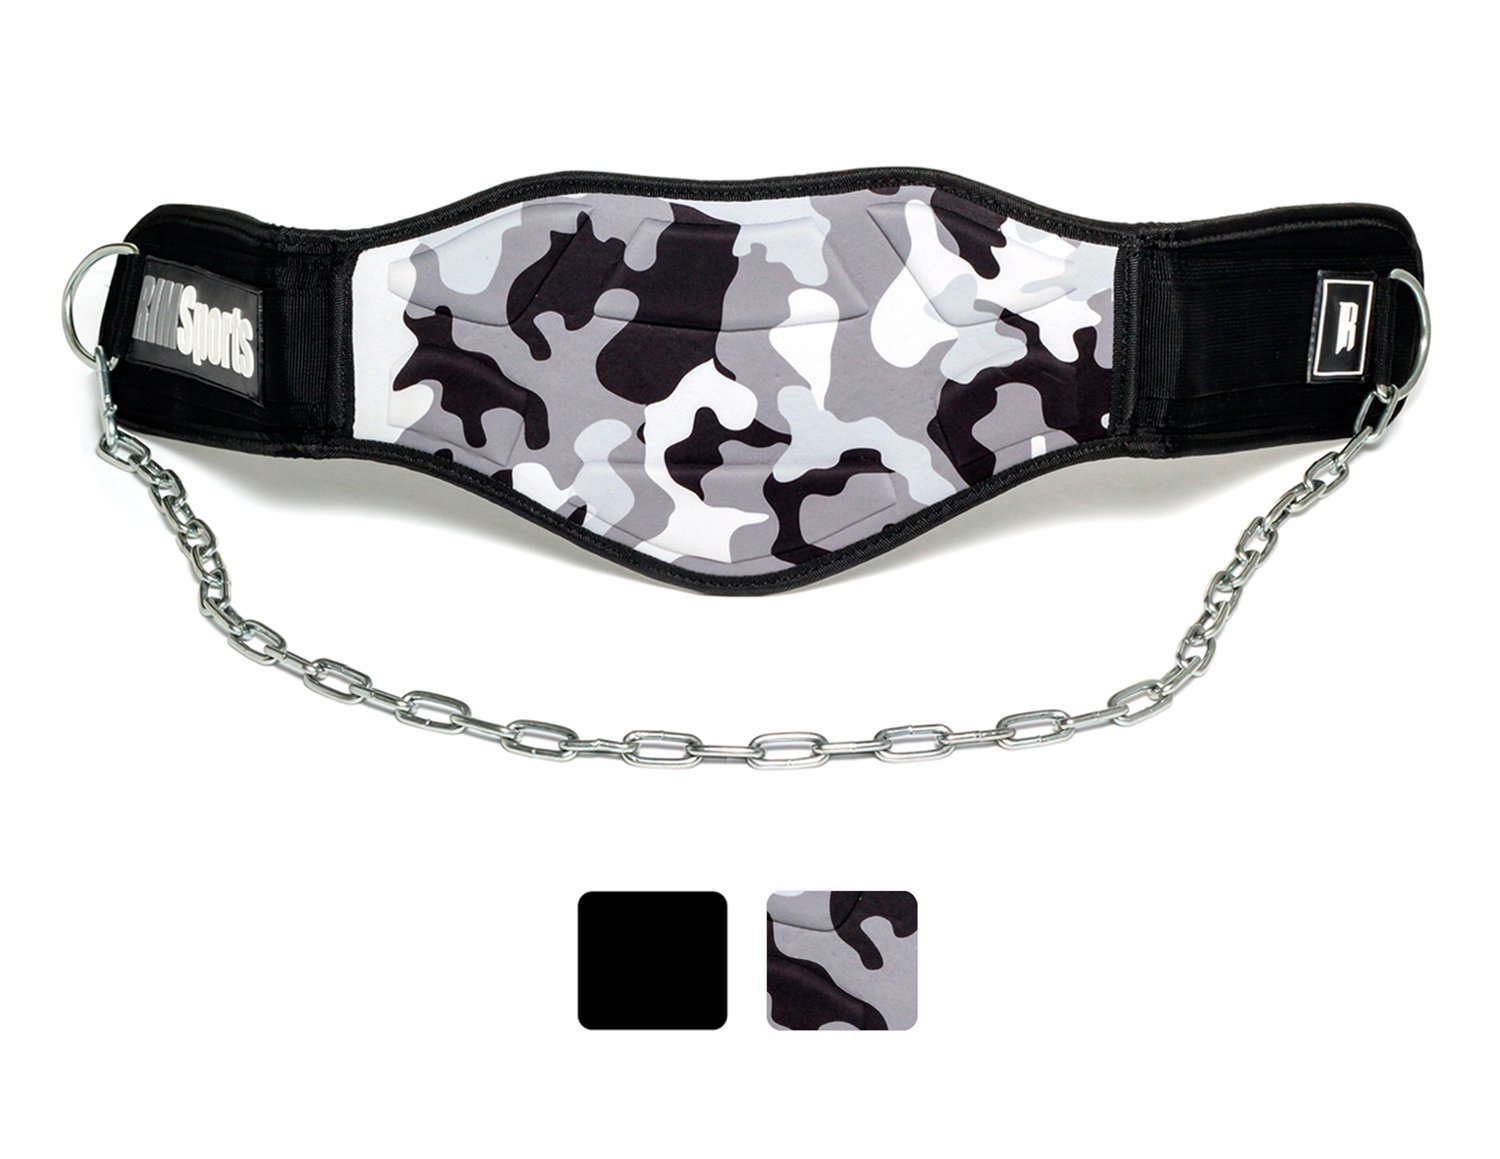 Premium Dip Belt With Chain-Ideal Dipping Belt for Men&Women-Use For Dips,Weightlifting,Lifting,Weight-Ideal Dip Belt Weightlifting-Best Weight Belt For Pull Ups & Dips-Dipping Belt(Camouflage Gray)